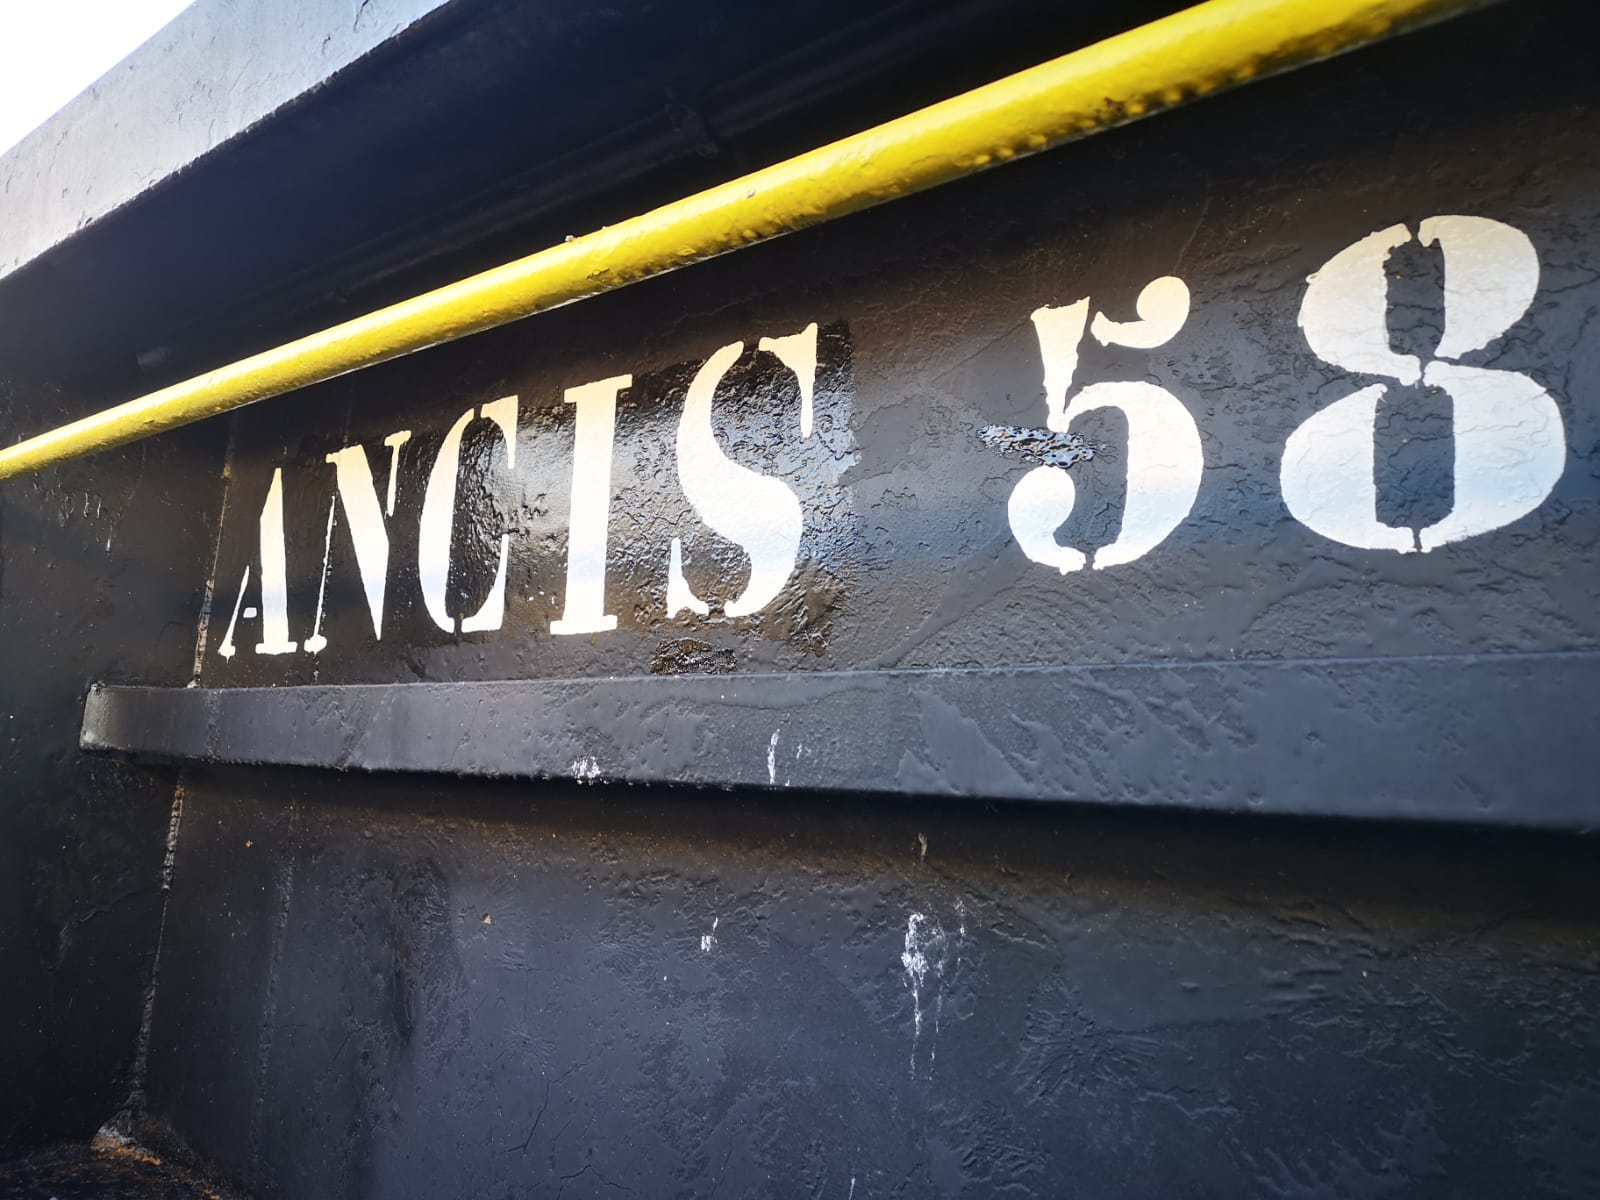 Ancis 58